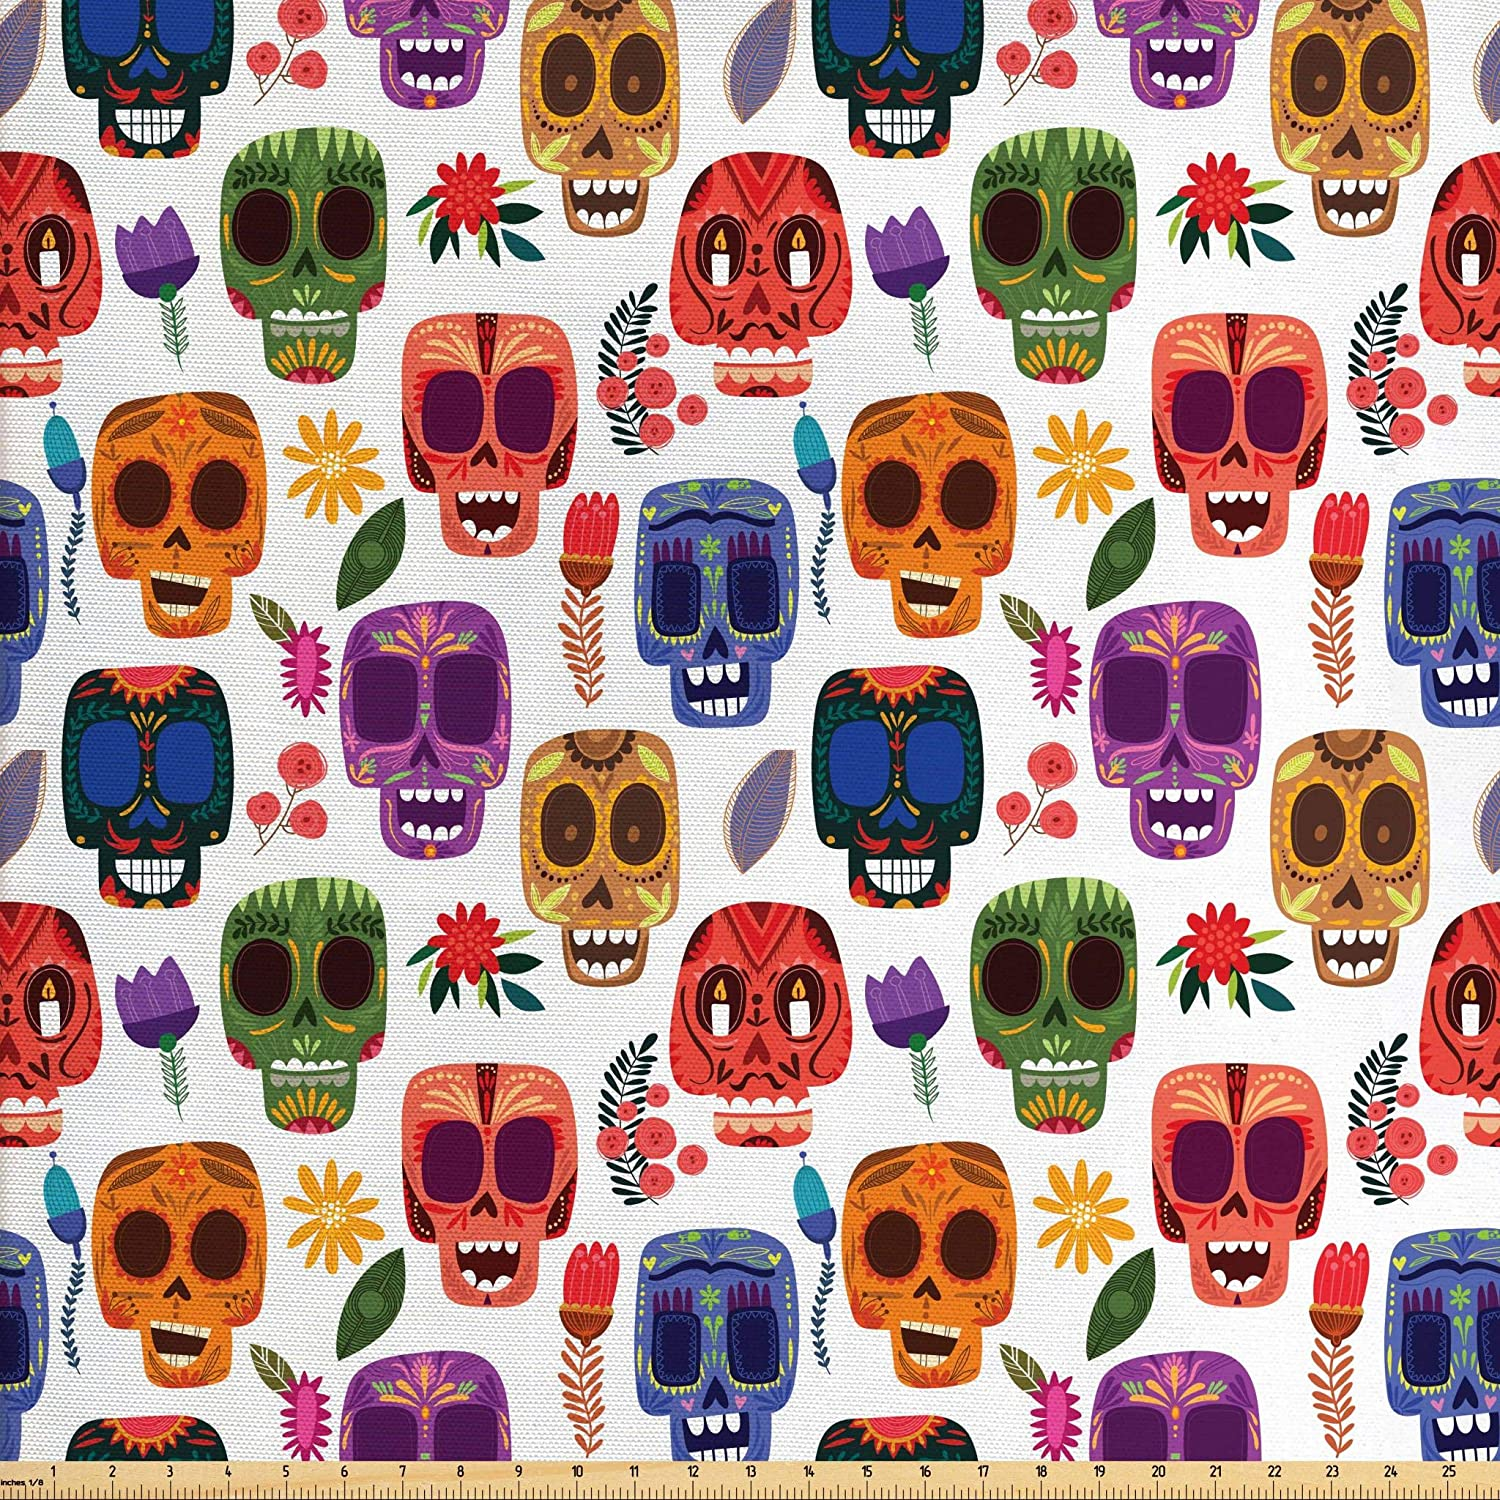 Ambesonne Day of The Dead Fabric by The Yard, Artwork Wooden Scary Cartoon Funny Details Print, Decorative Fabric for Upholstery and Home Accents, 3 Yards, Orange Coral